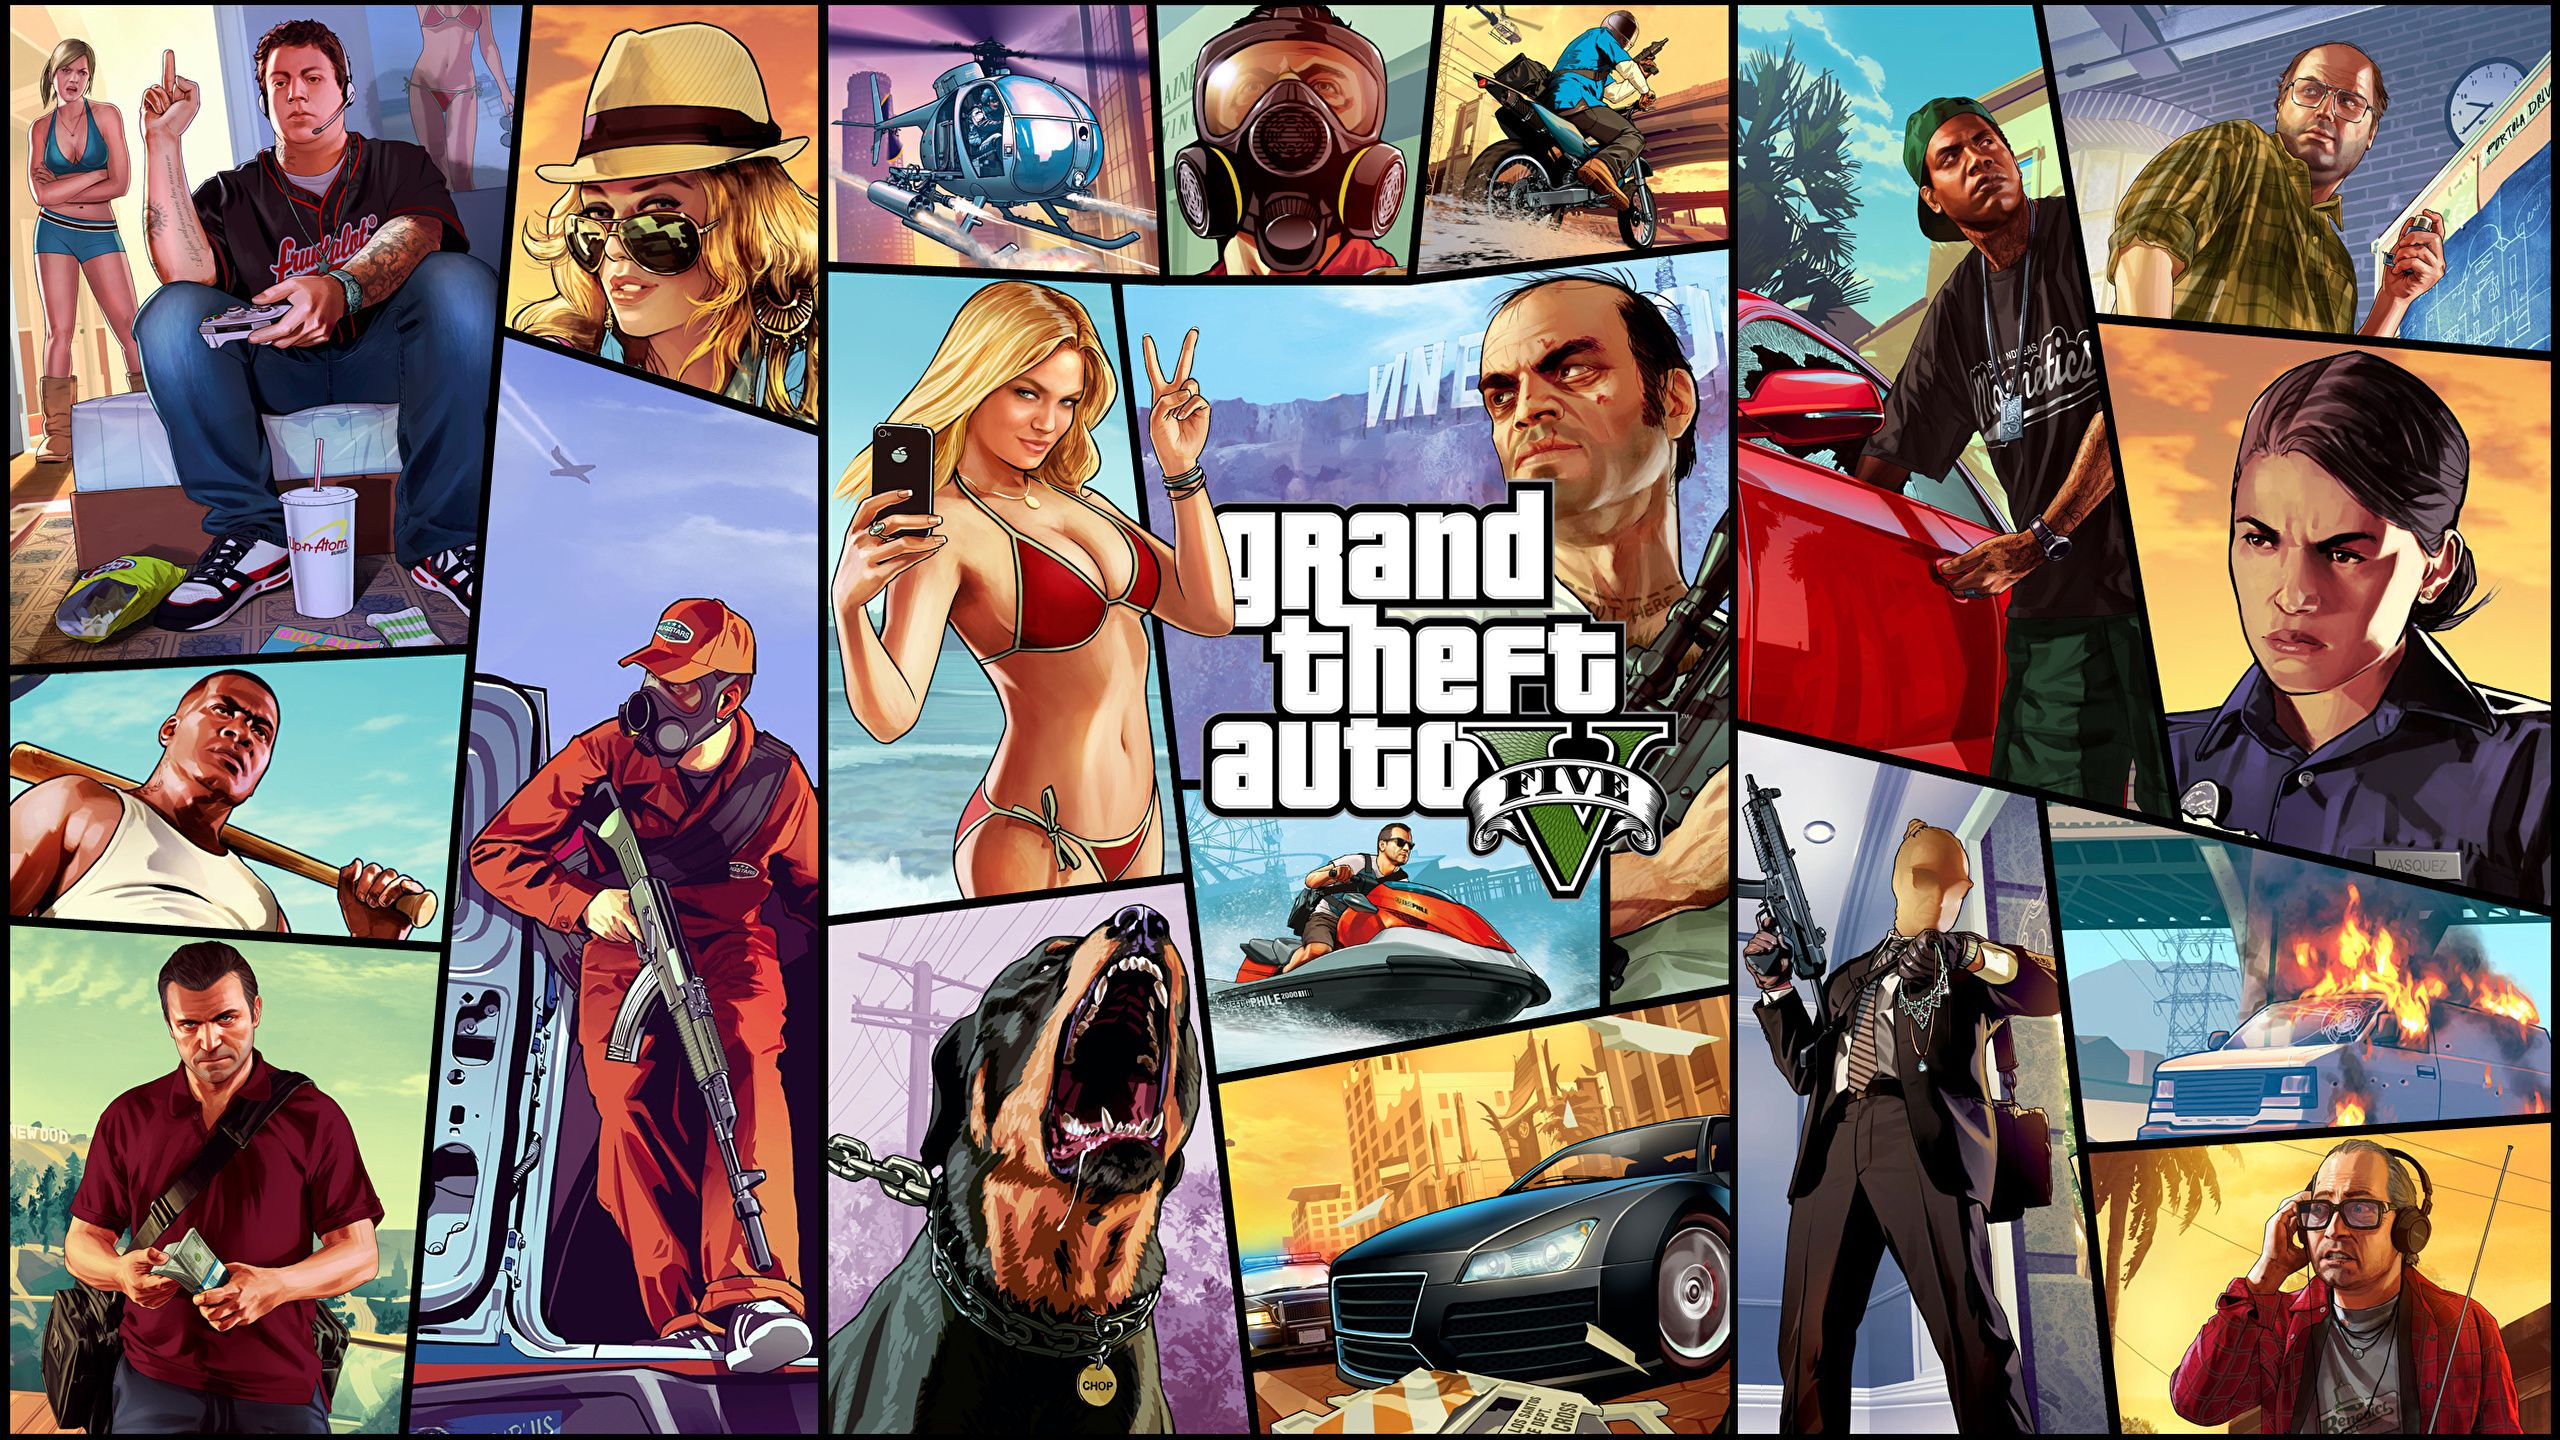 GTA 5 2560X1440 Wallpapers - Top Free GTA 5 2560X1440